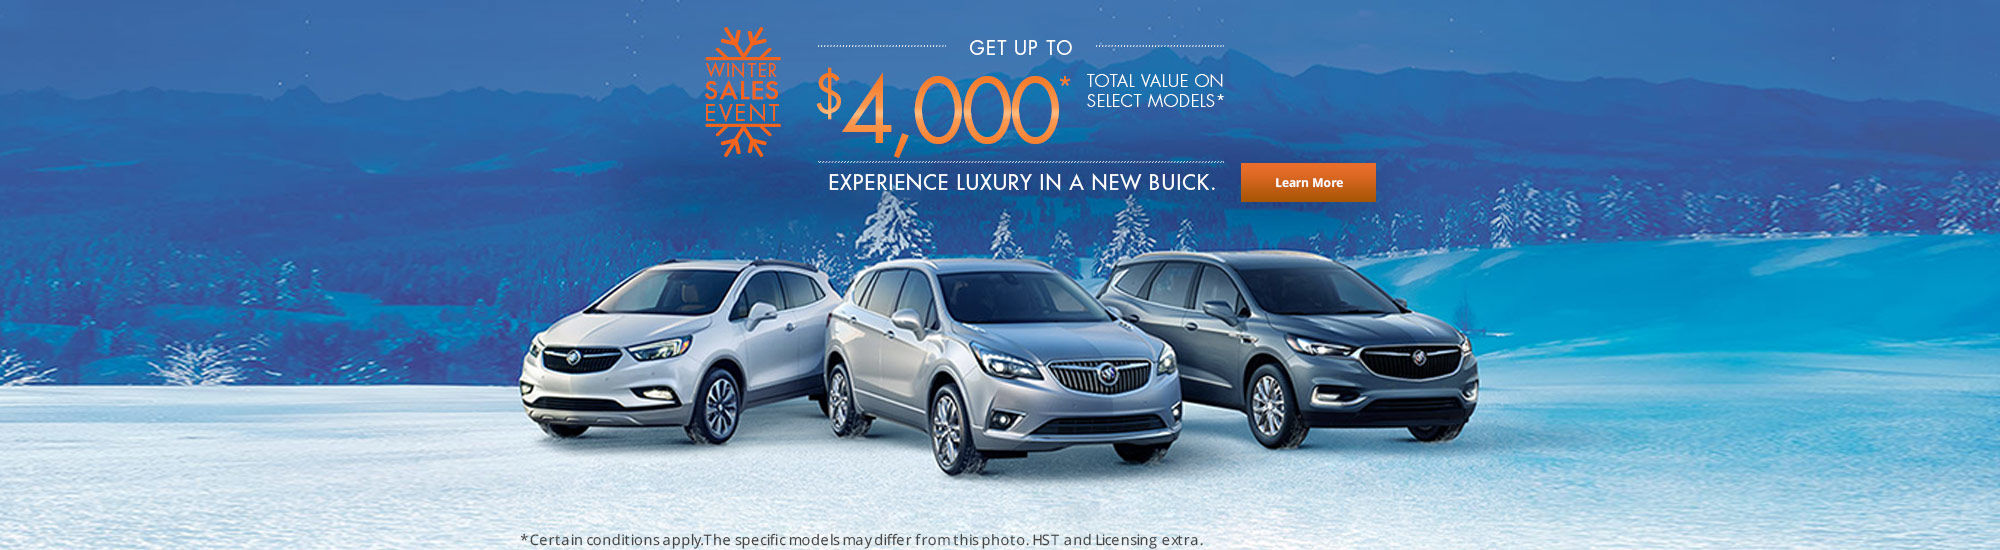 BUICK EVENT